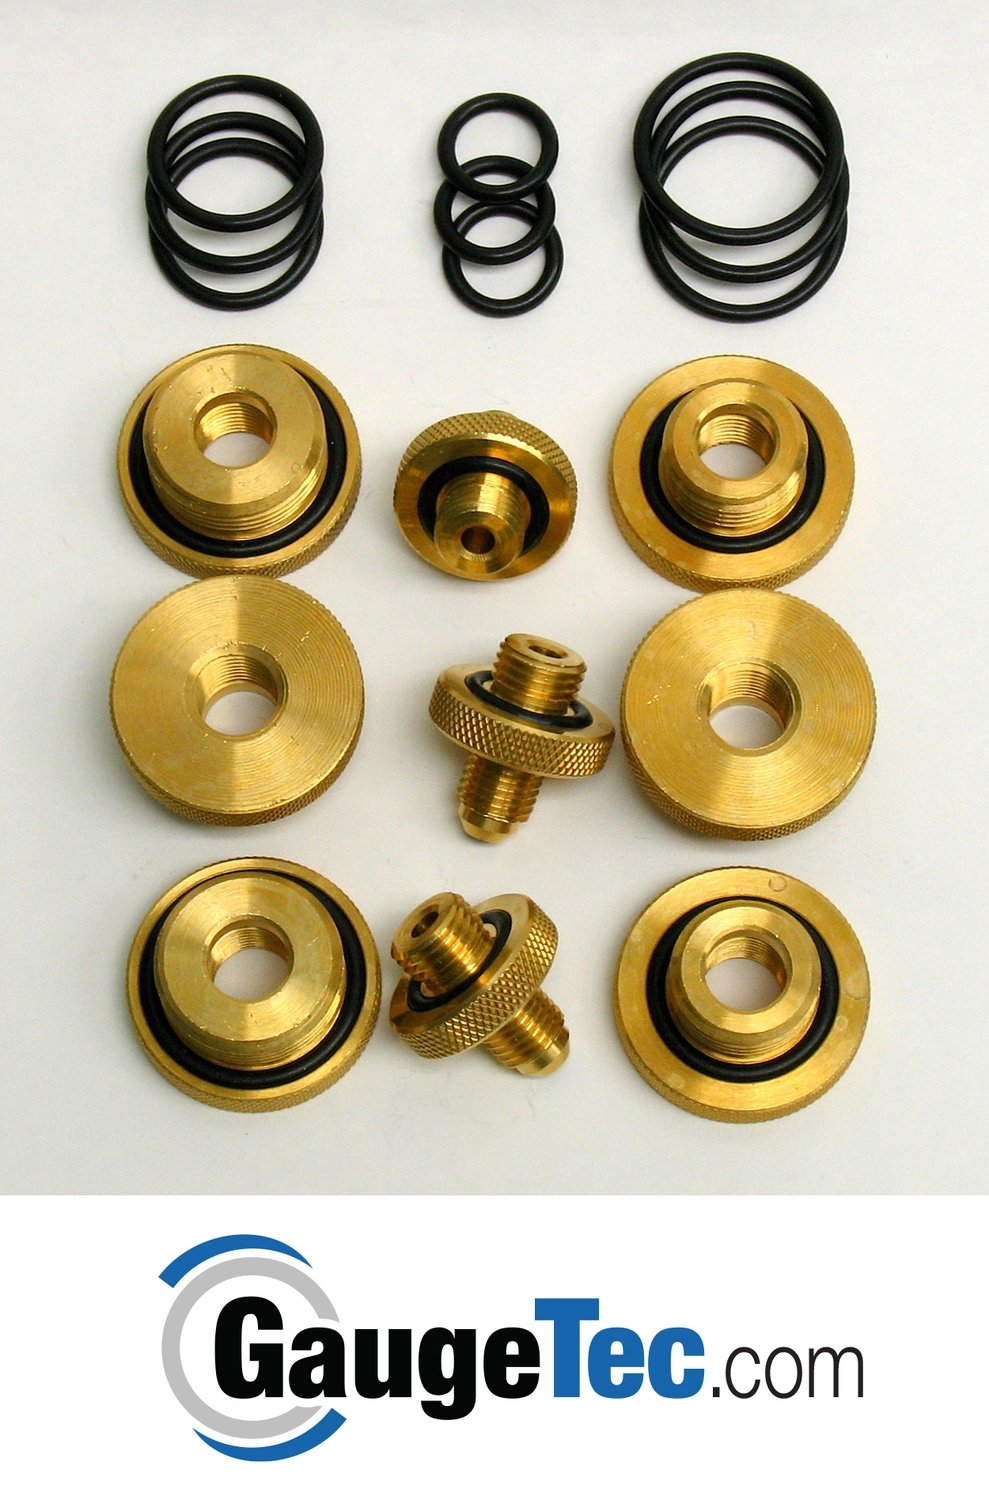 Quick Connect Test Cock Adapter Kit (Complete set of each of above 9 fittings)